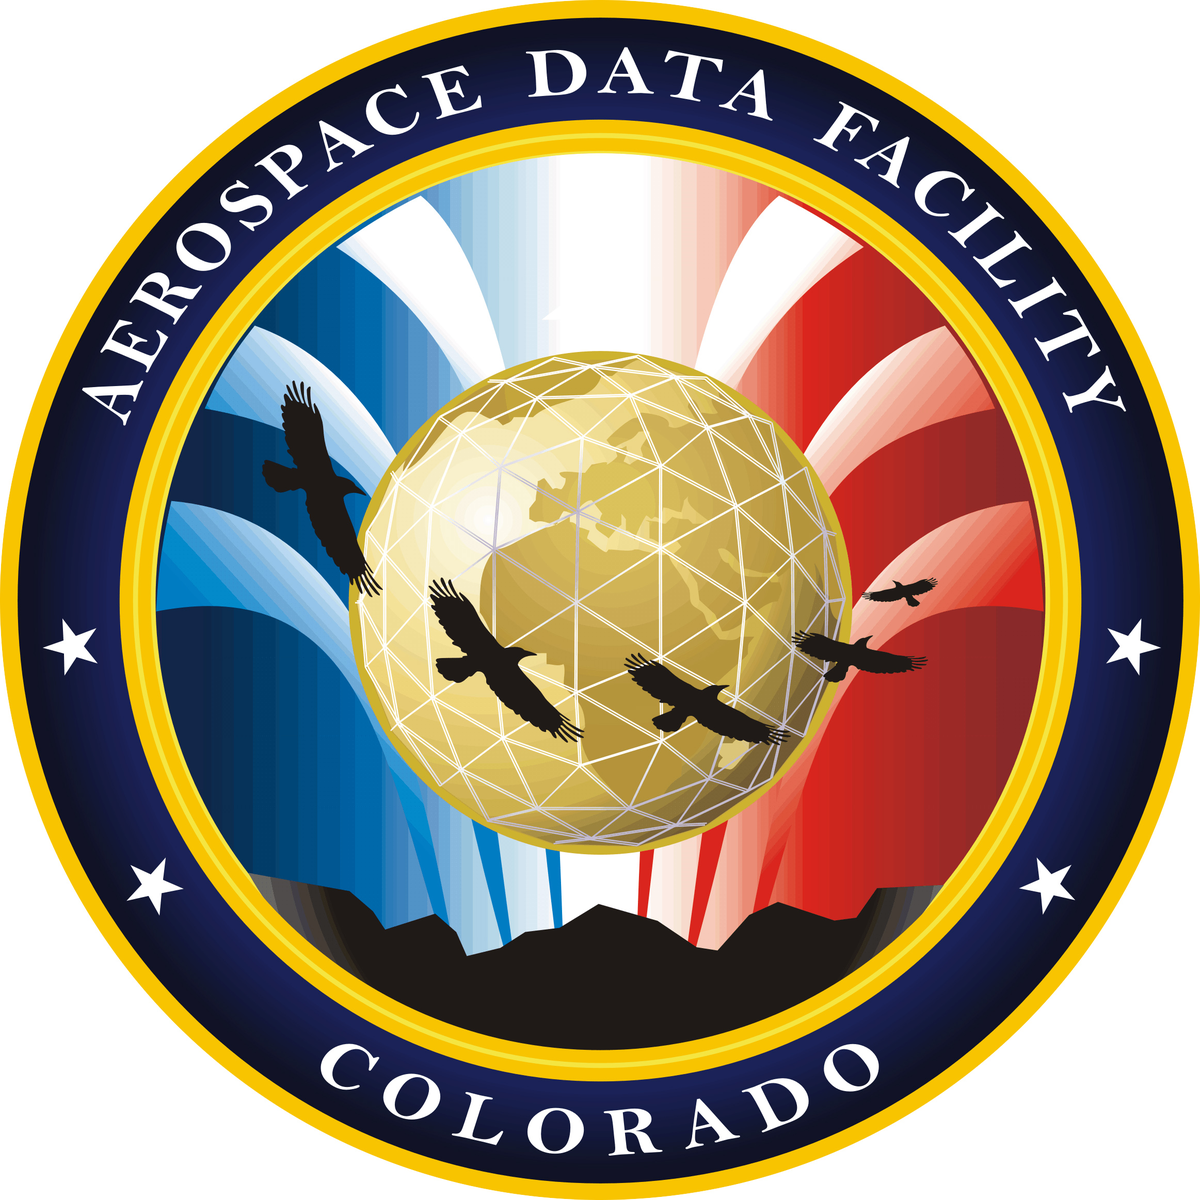 Aerospace Data Facility-Colorado - Wikipedia